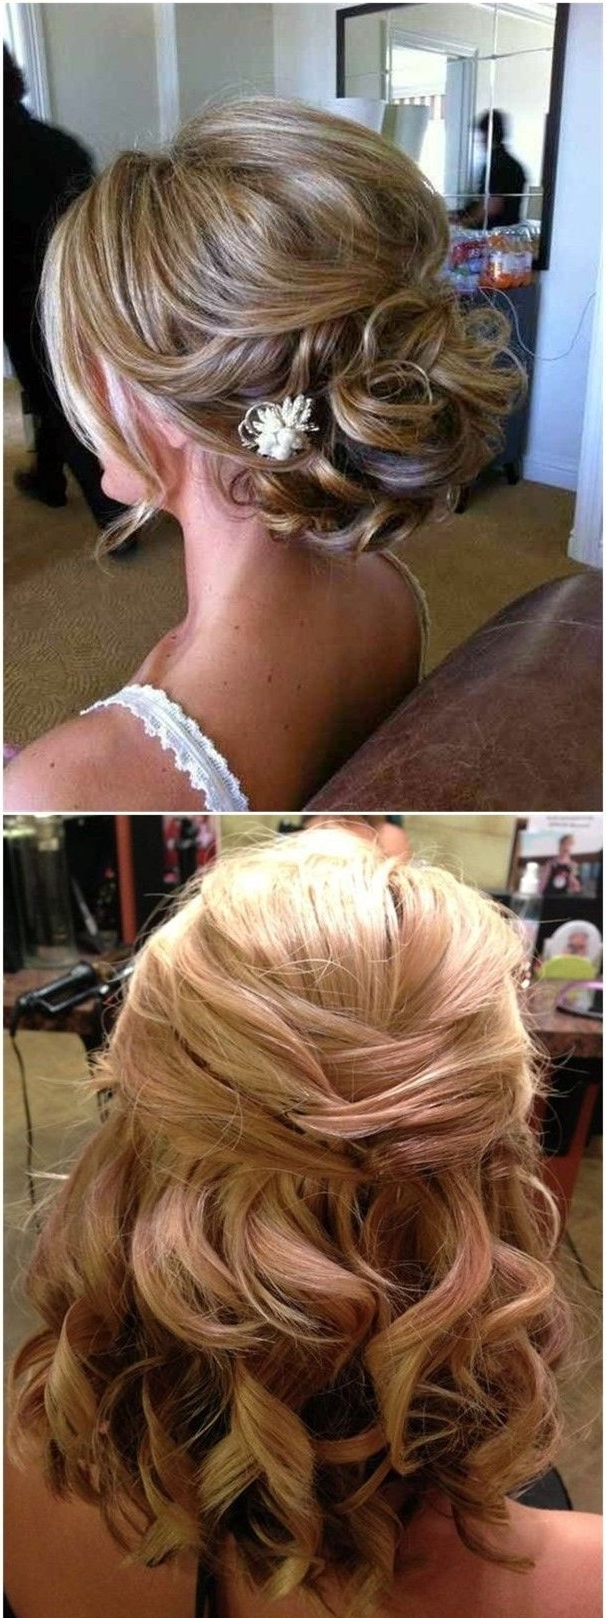 24 Medium Length Wedding Hairstyles For 2020 Mrs To Be 20+ Awesome Half Up Medium Length Hair Wedding Hairstyles